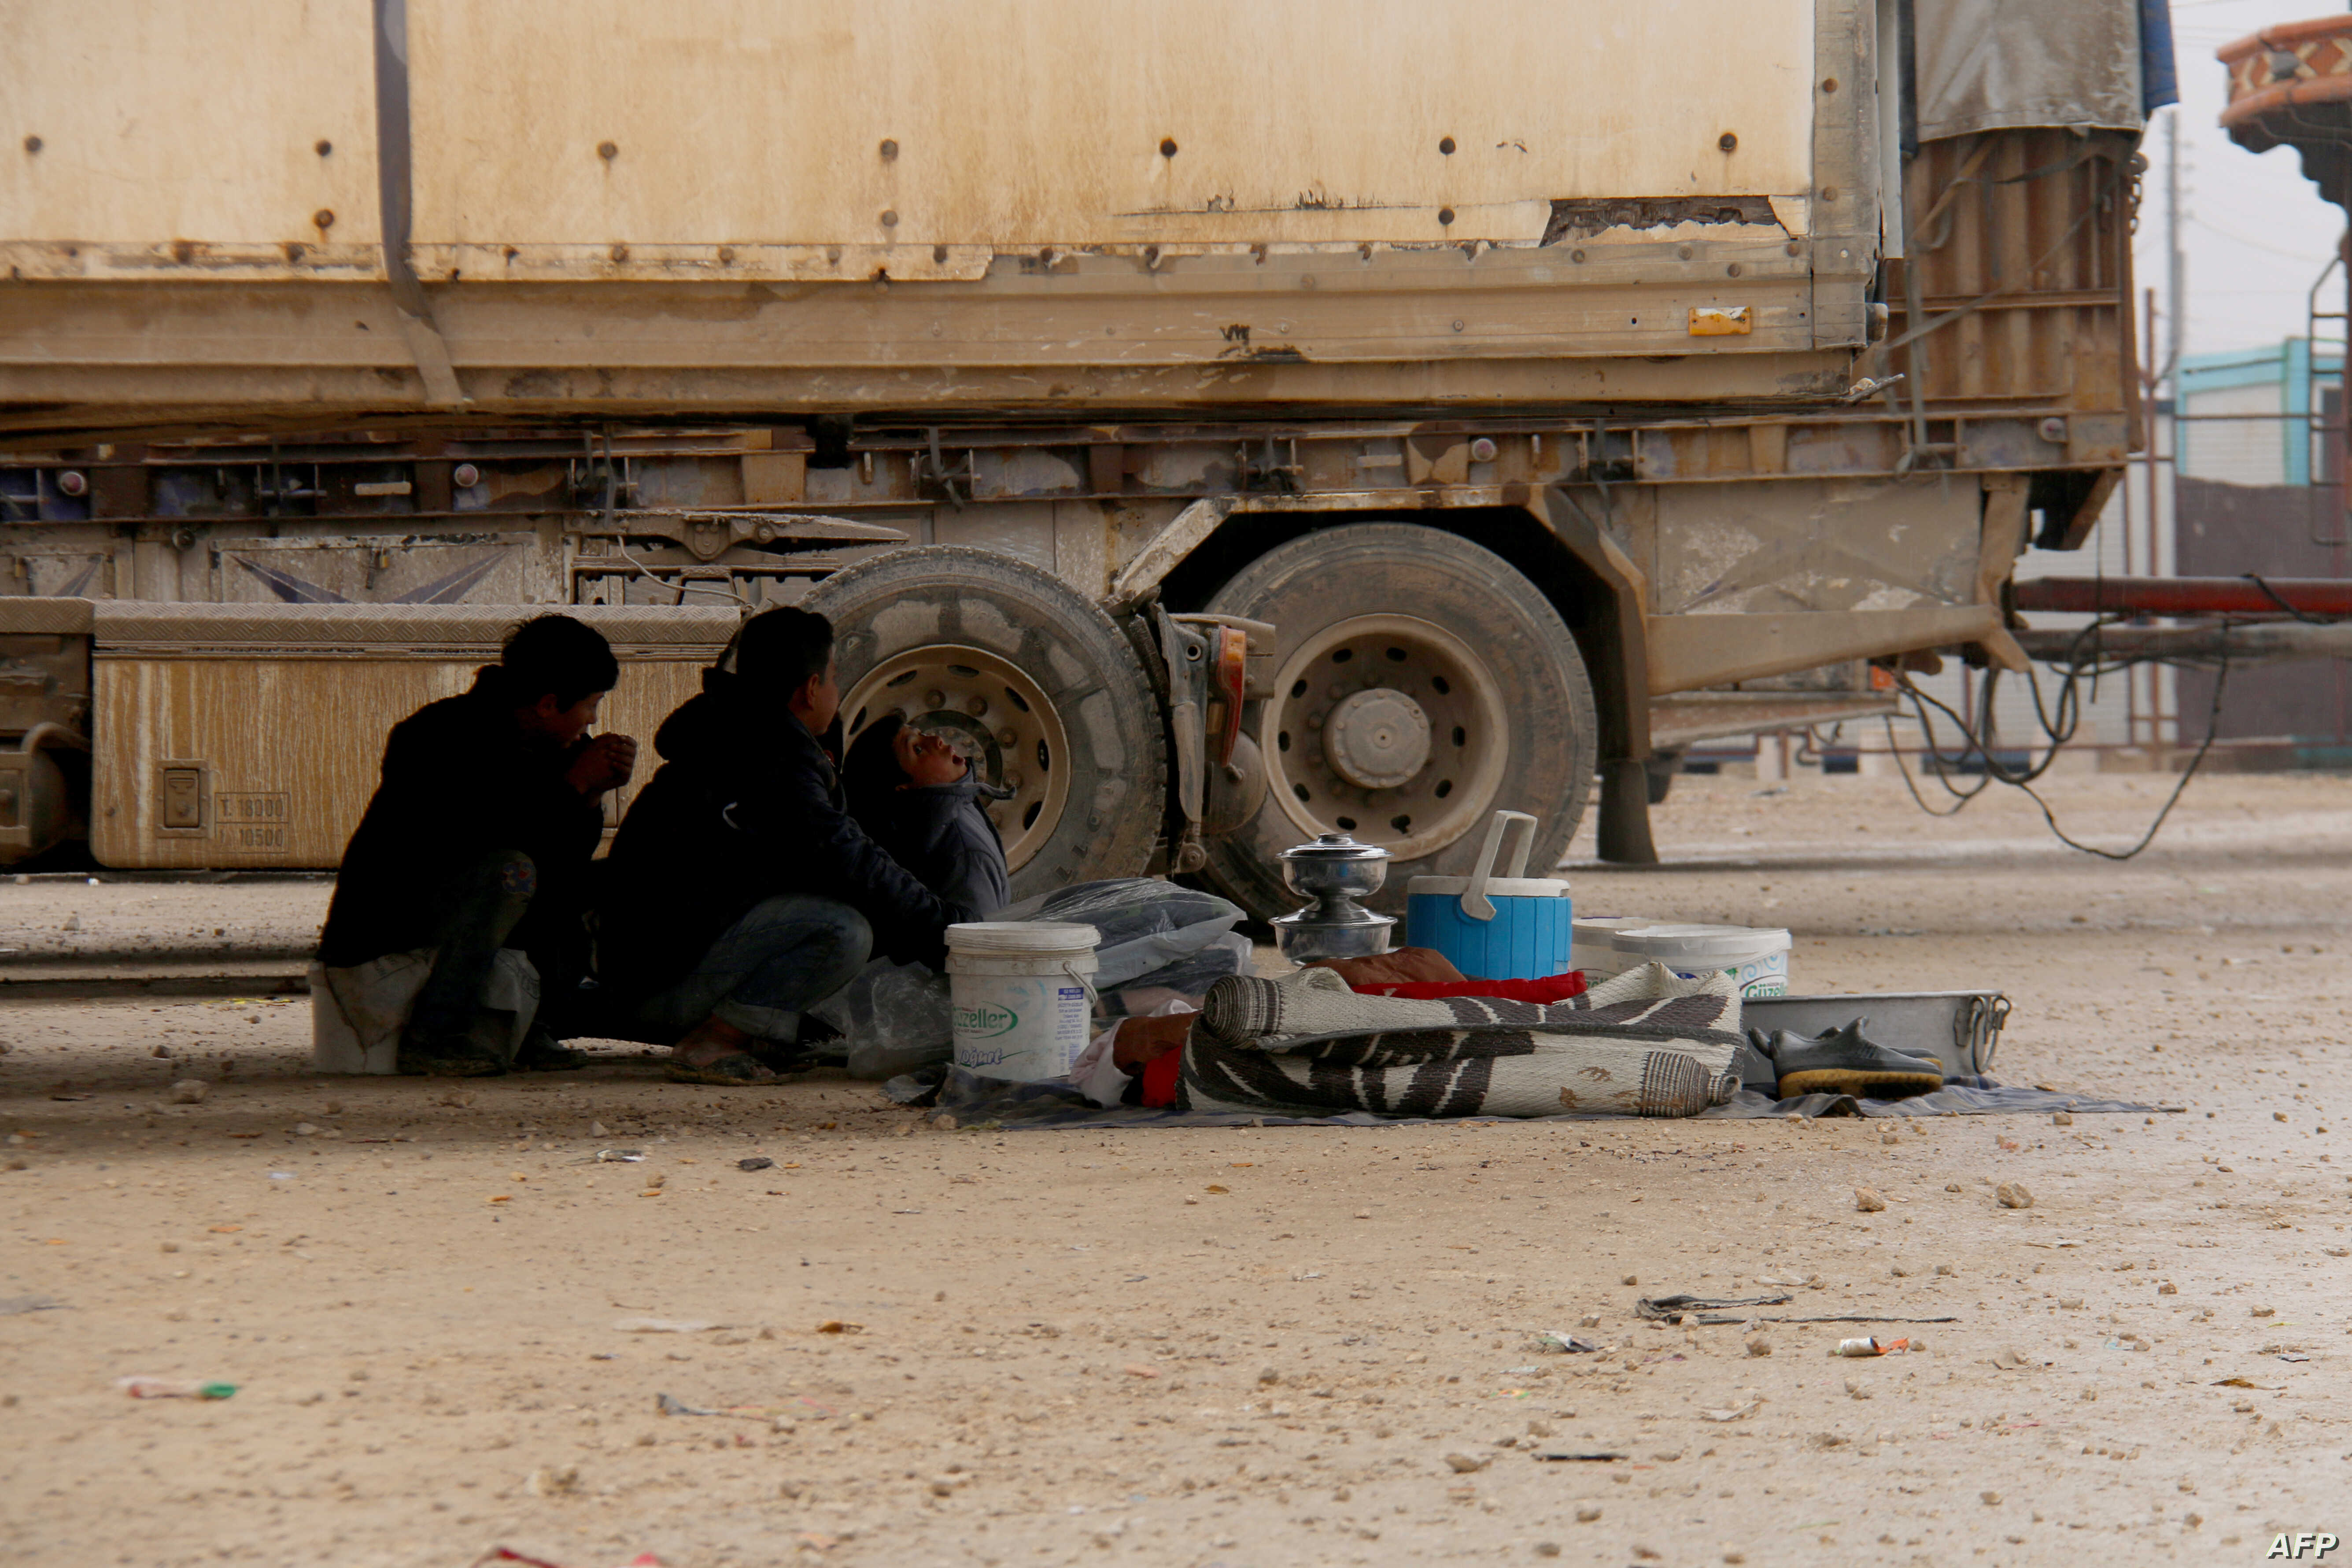 Displaced Syrians fleeing areas in the northern embattled province of Aleppo, sit under a truck at the Bab al-Salama camp, set up outside the Syrian city of Azaz on Syria's northern border with Turkey, Feb. 12, 2016.